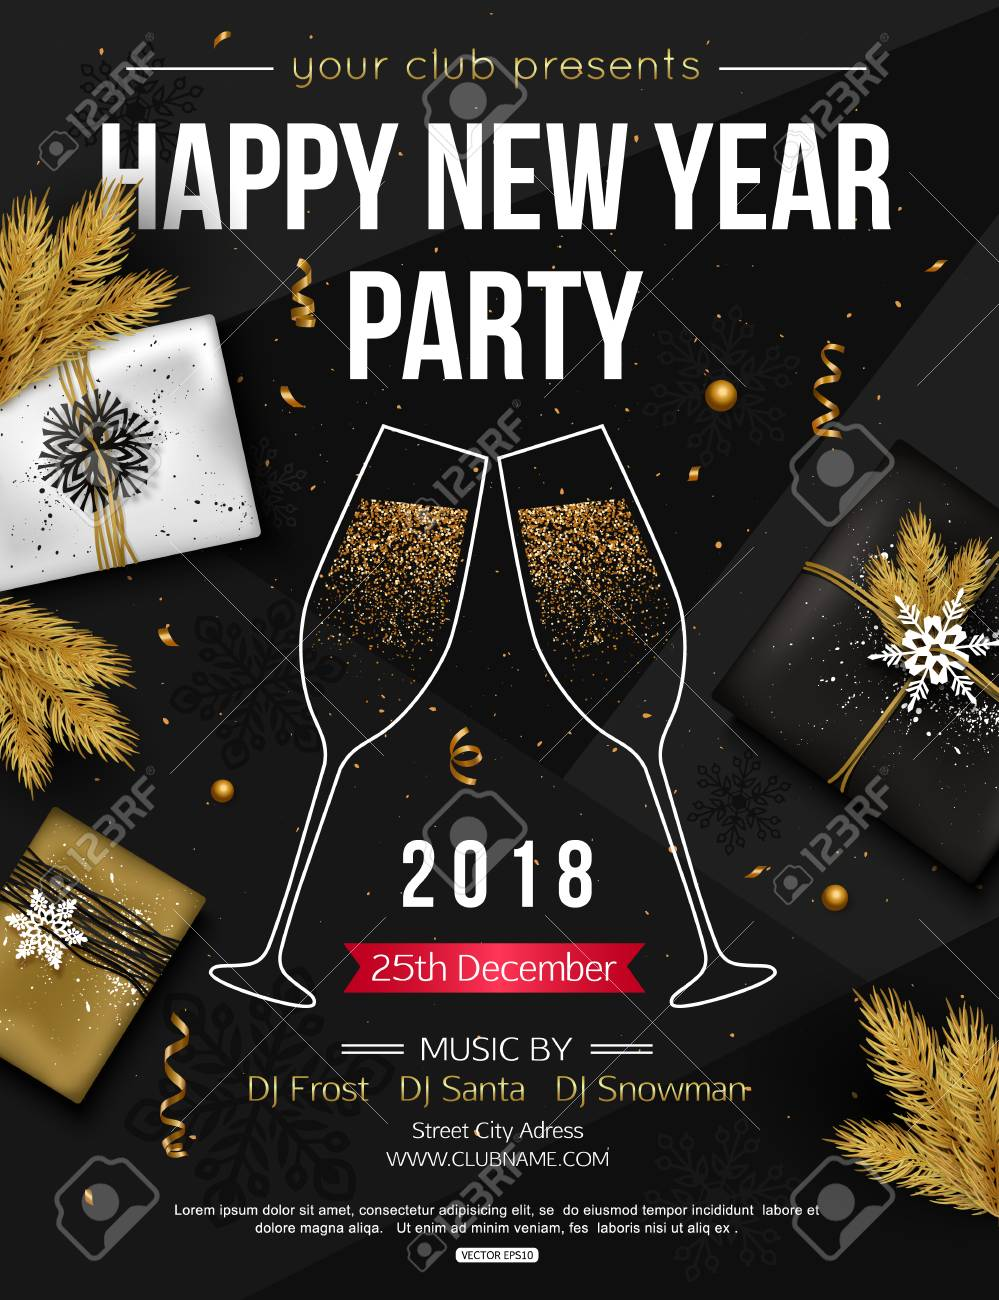 happy new year party flyer template with glasses of champagne vector illustration stock vector